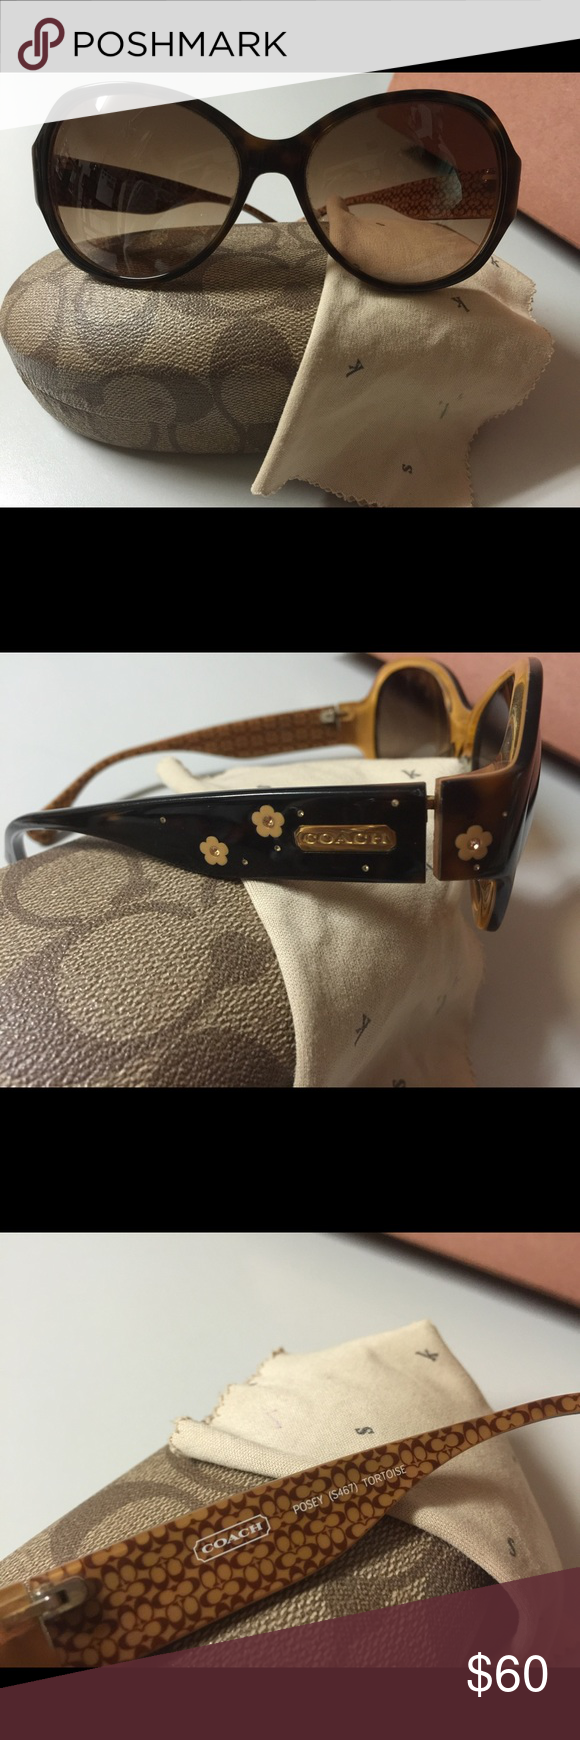 Coach Posey sunglasses Coach Posey sunglasses. The glasses are in perfect condition with no scratches but the case leaves alot to be desired. It will still protect your sunglasses but please note the prize here is the glasses and not the case! Coach Accessories Glasses